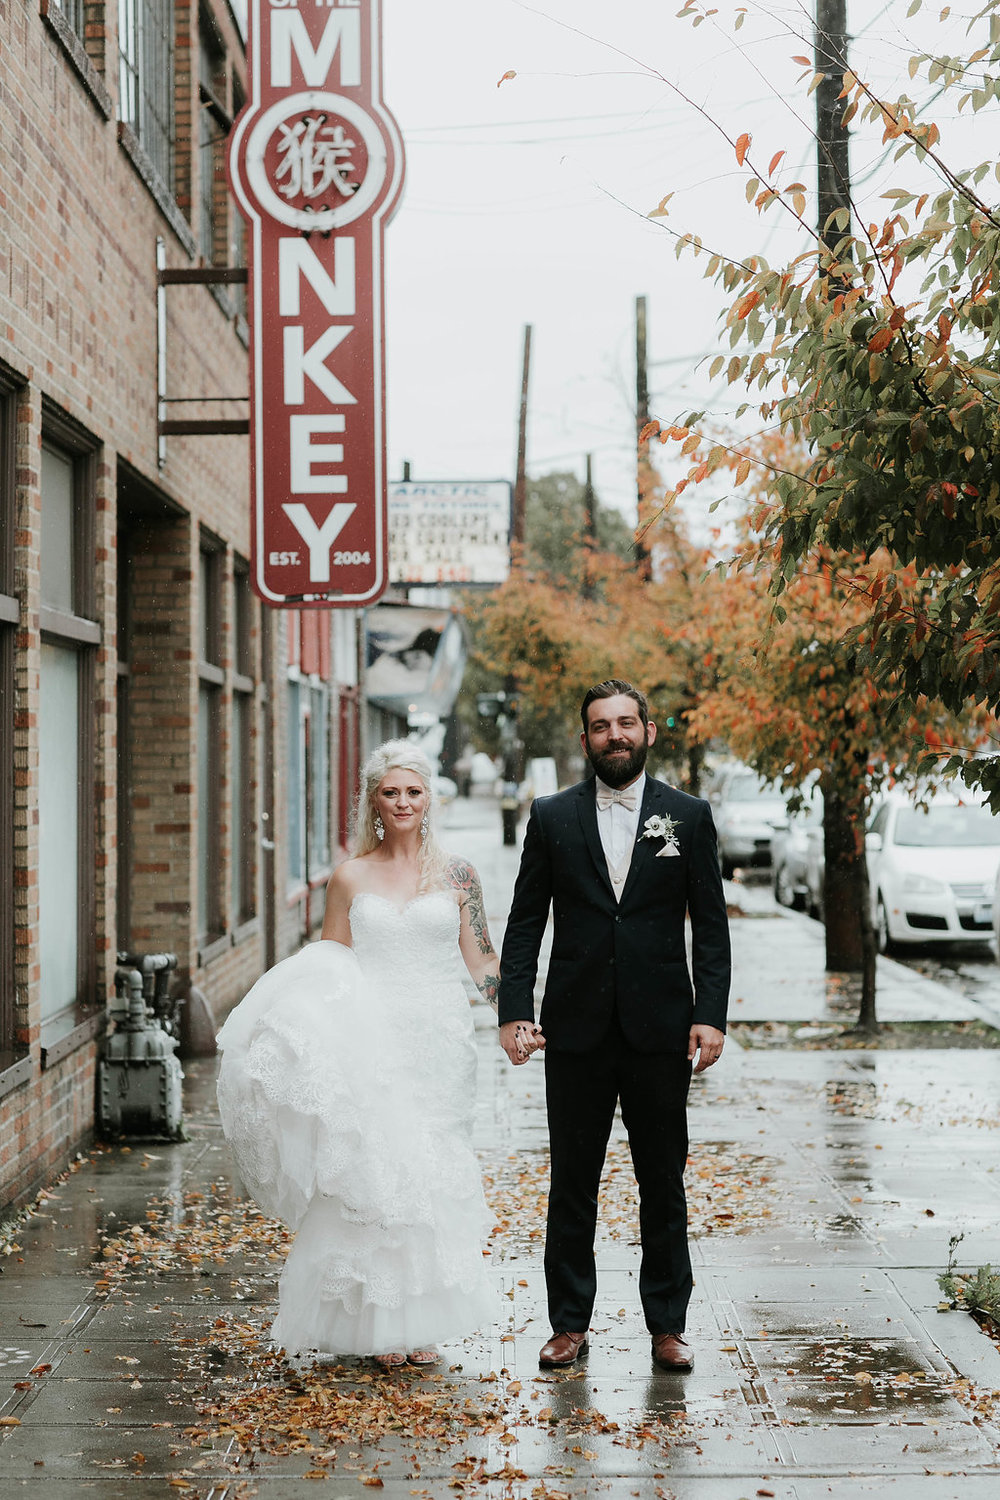 The_Big_Fake_wedding_Seattle_Within_sodo_wedding_by_Adina_Preston_Weddings_112.JPG